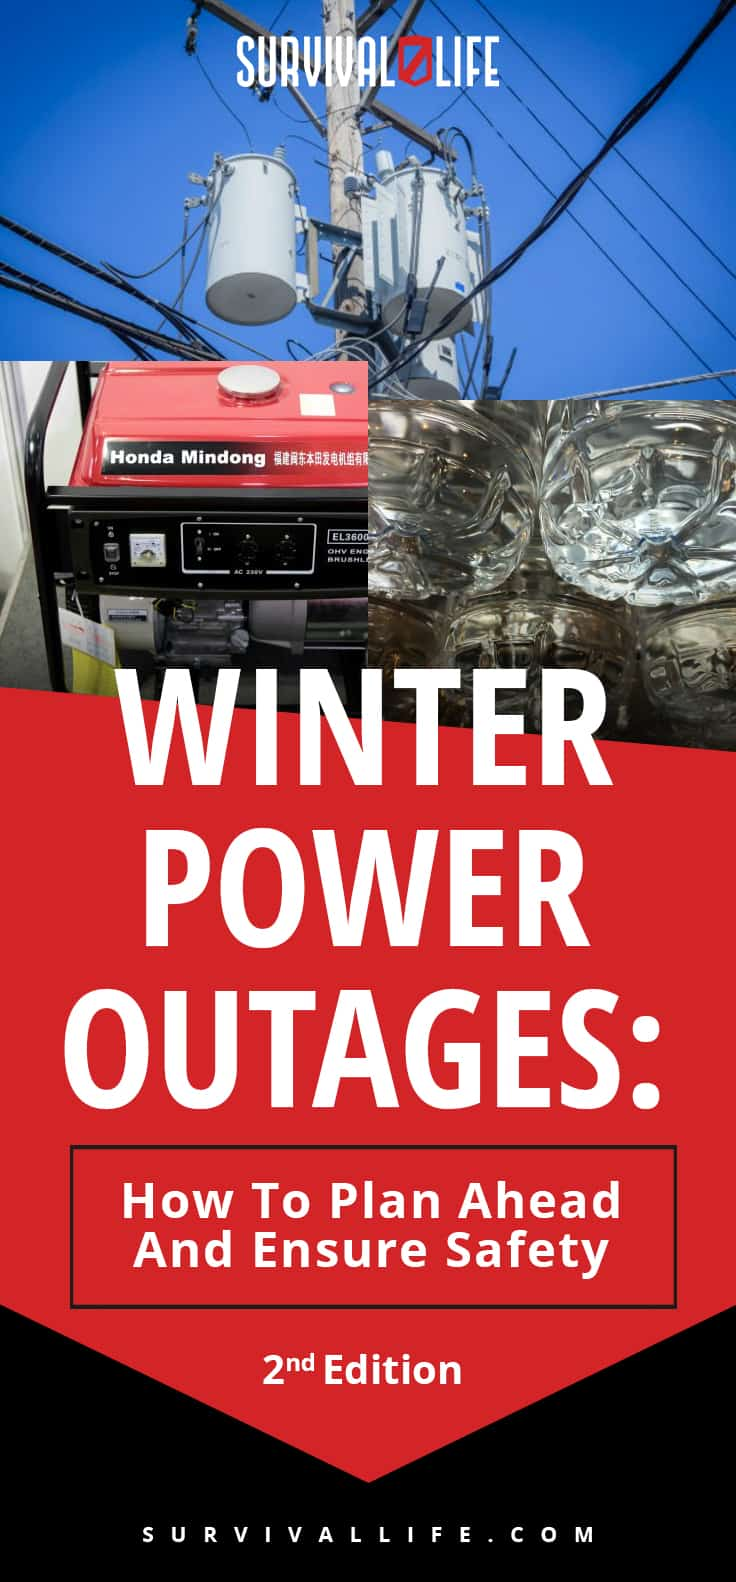 Power Outages | Winter Power Outages: How To Plan Ahead And Ensure Safety